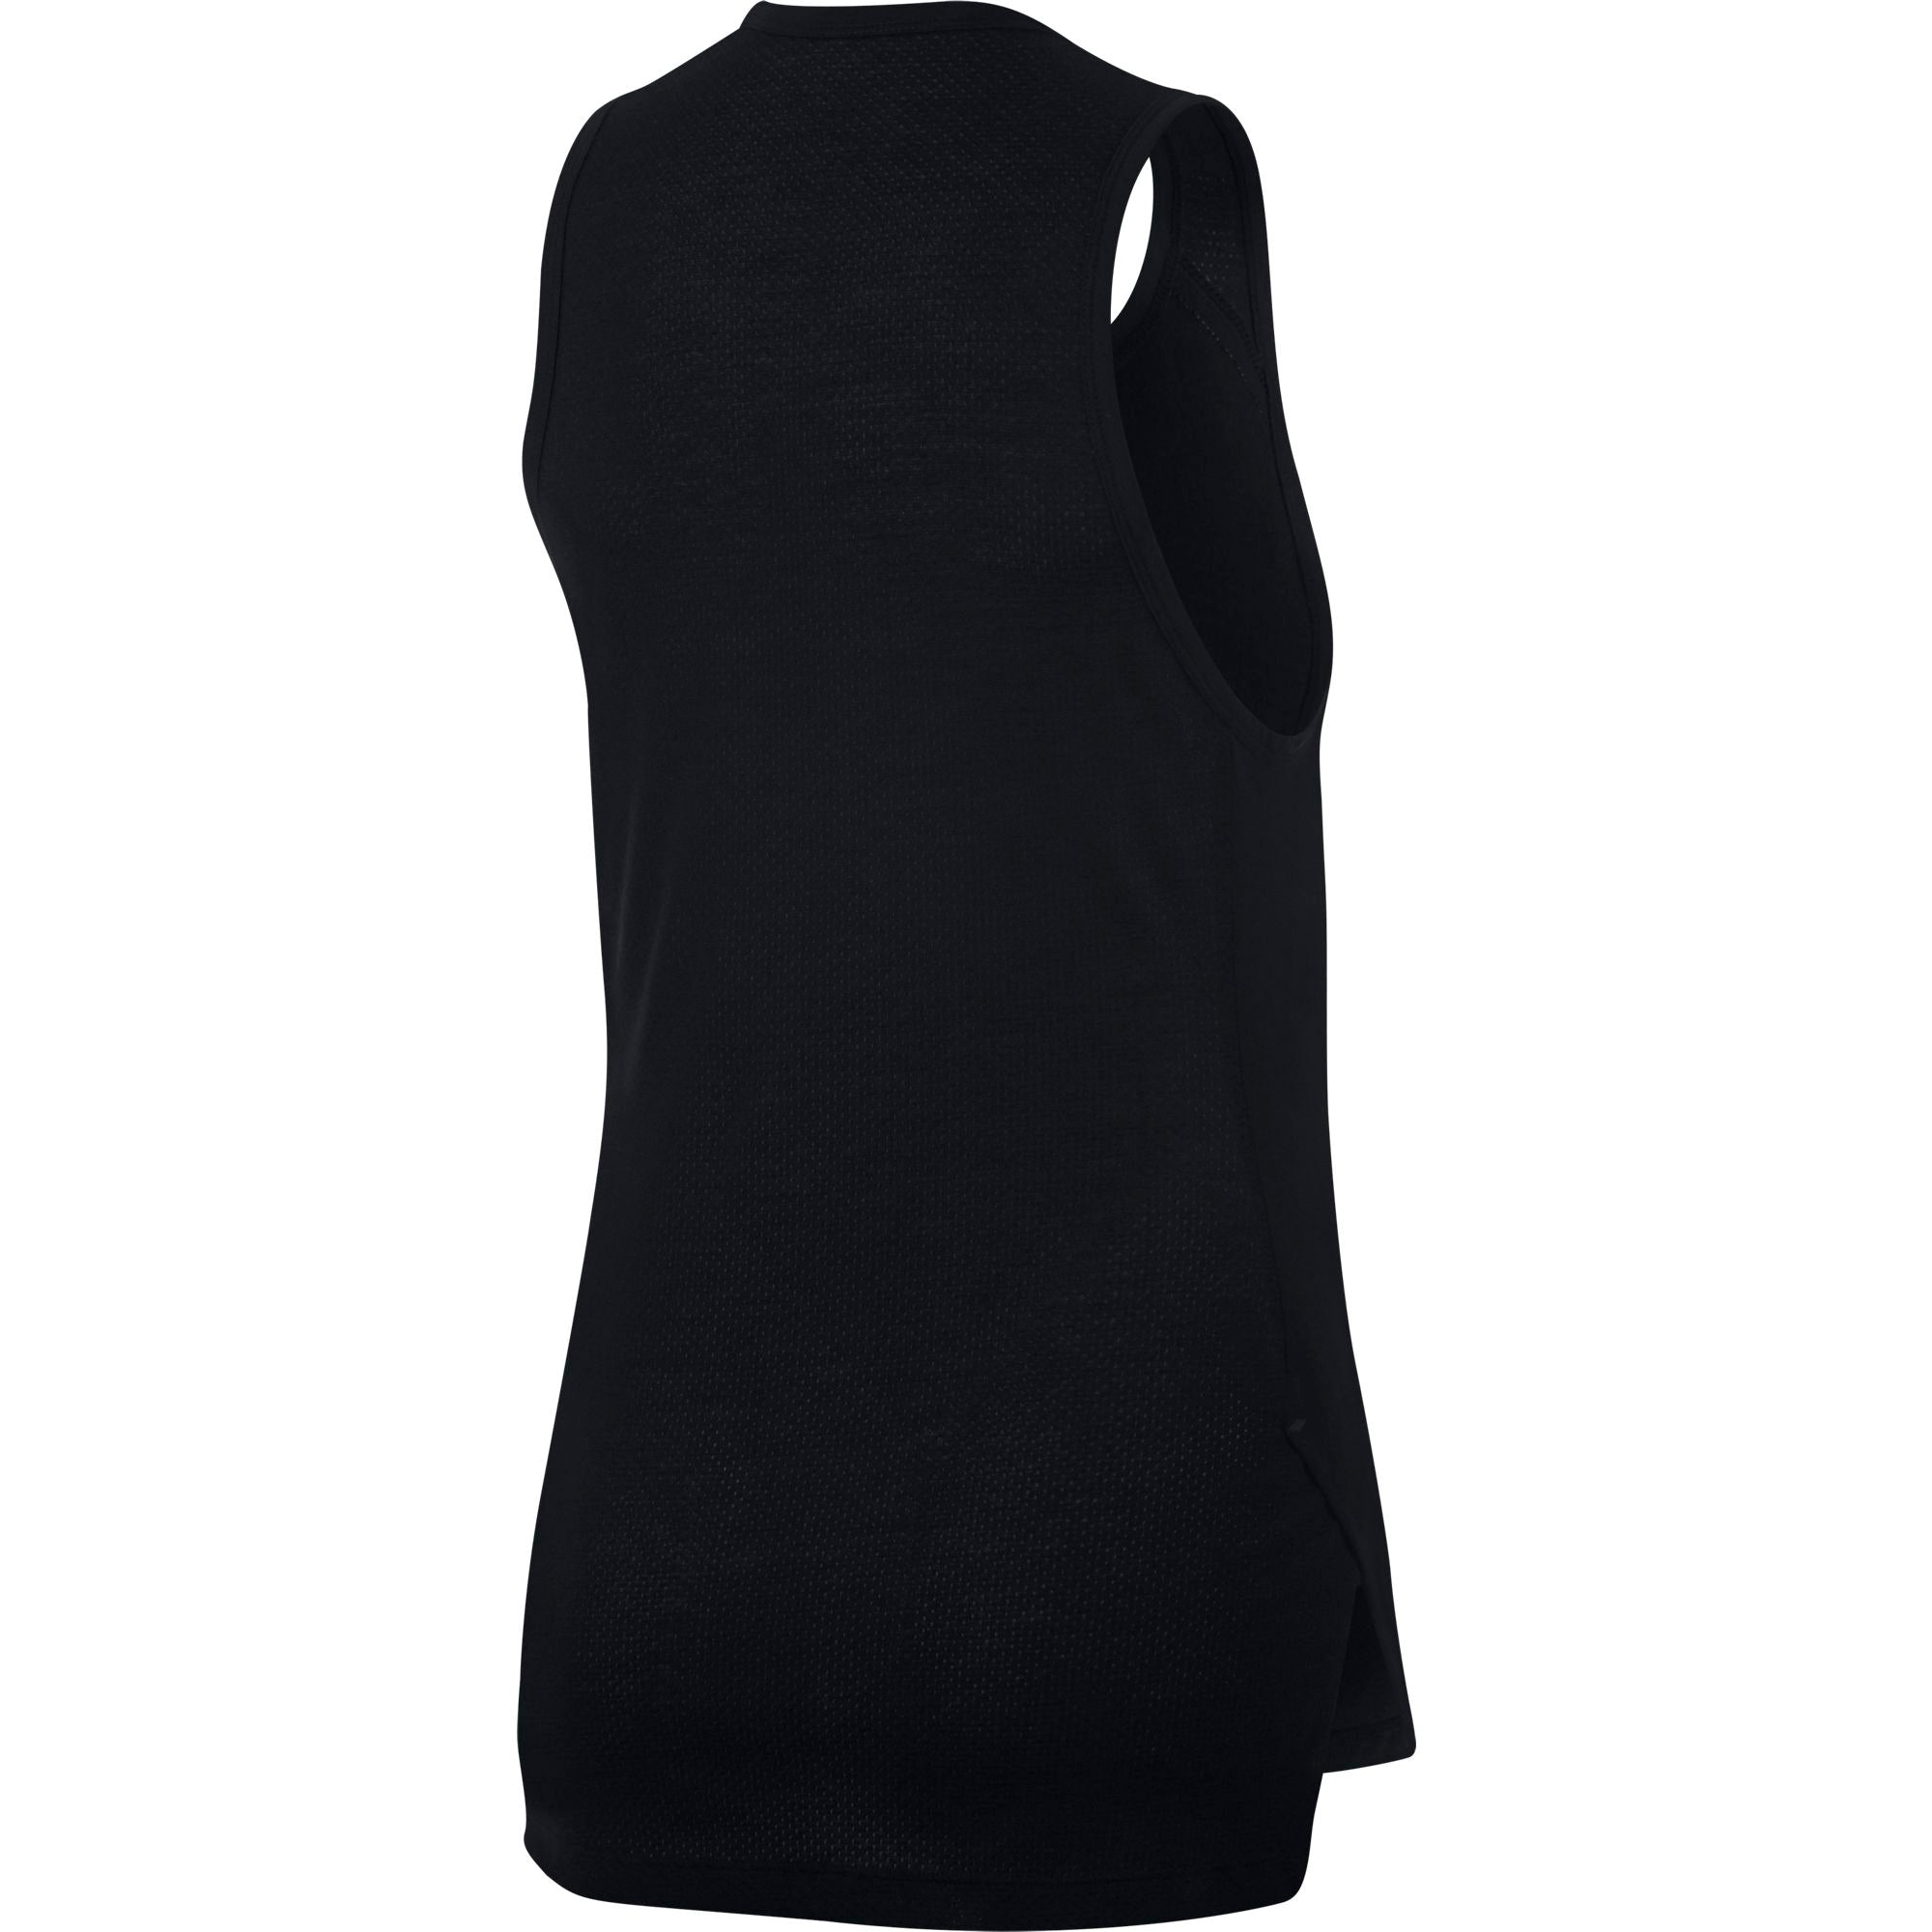 Nike Womens Basketball Breathe Elite Top - Black